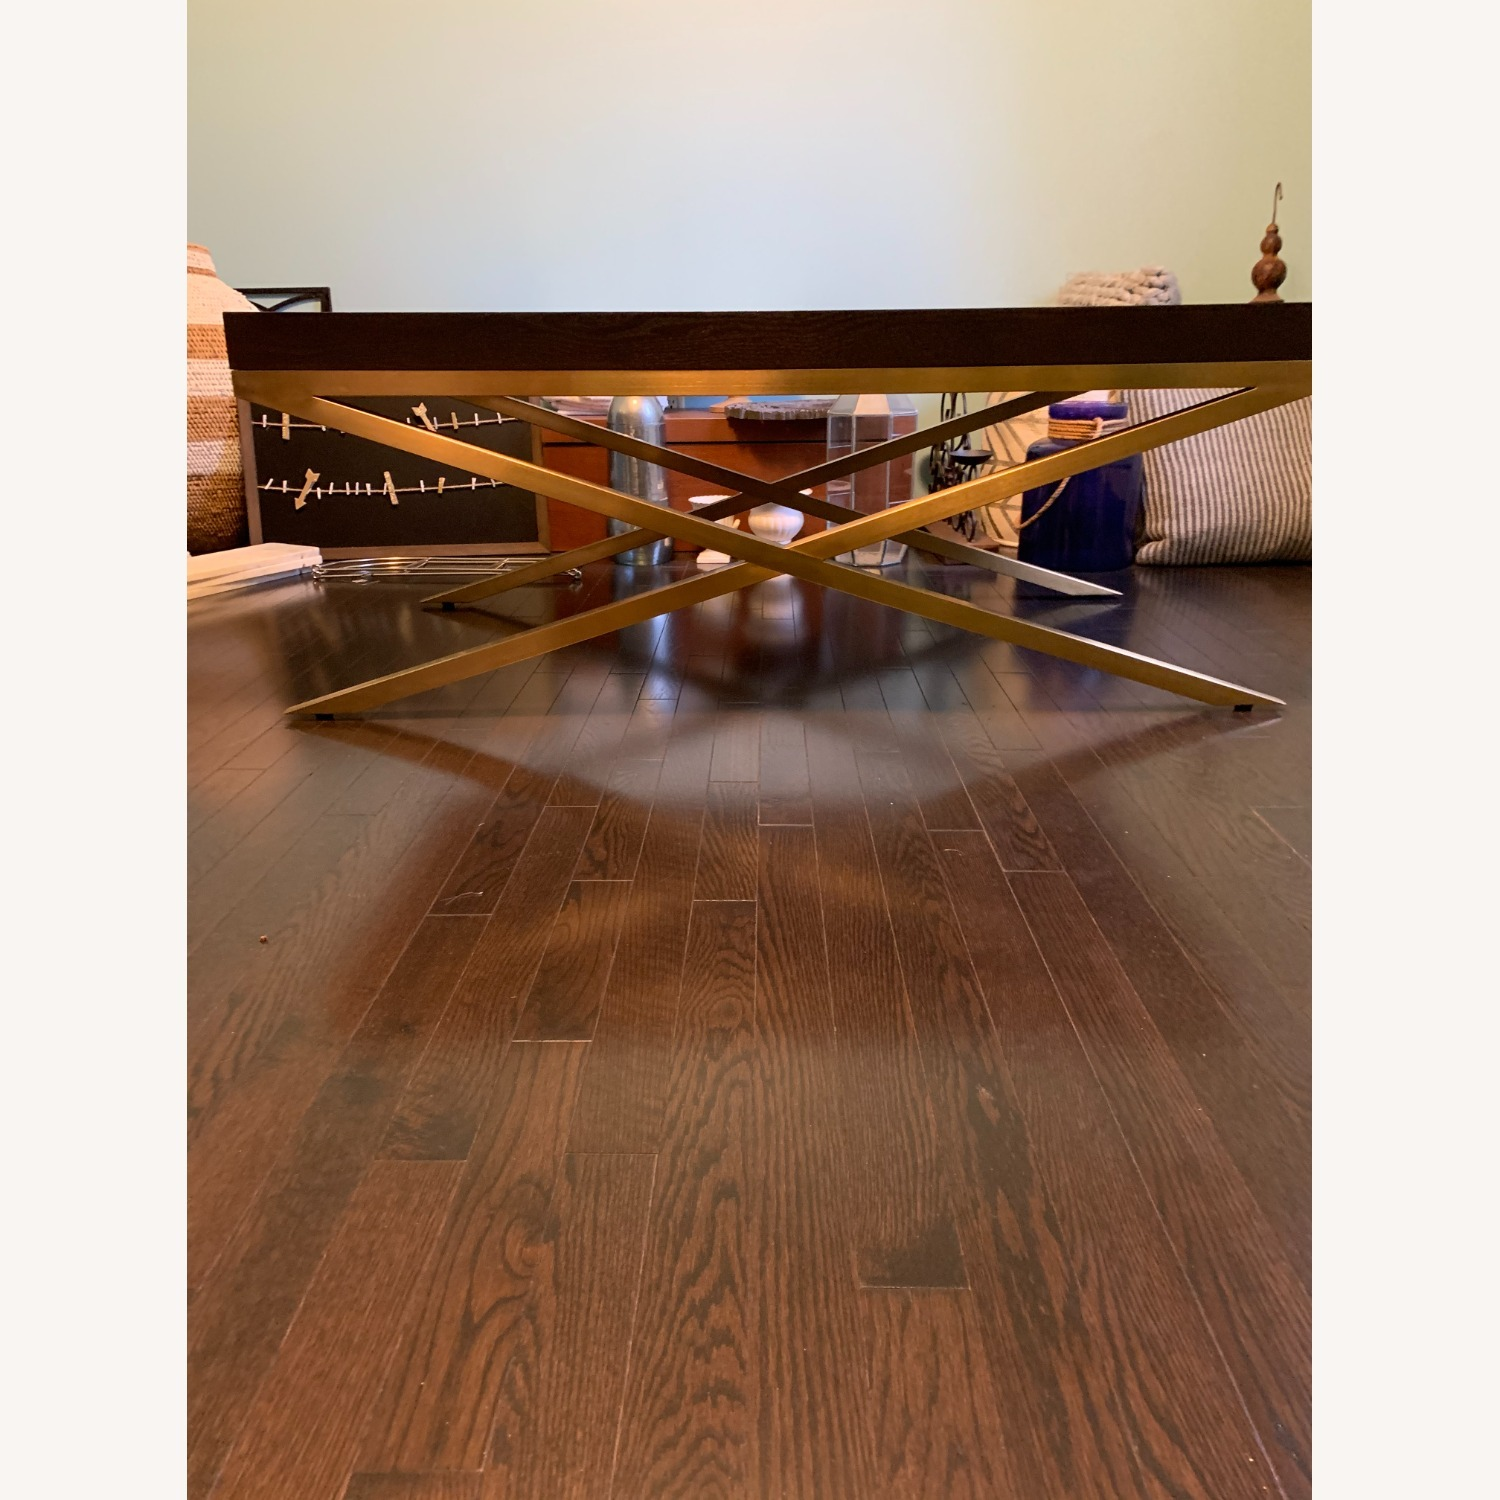 Vanguard Wood & Brass Coffee/Cocktail Table - image-9